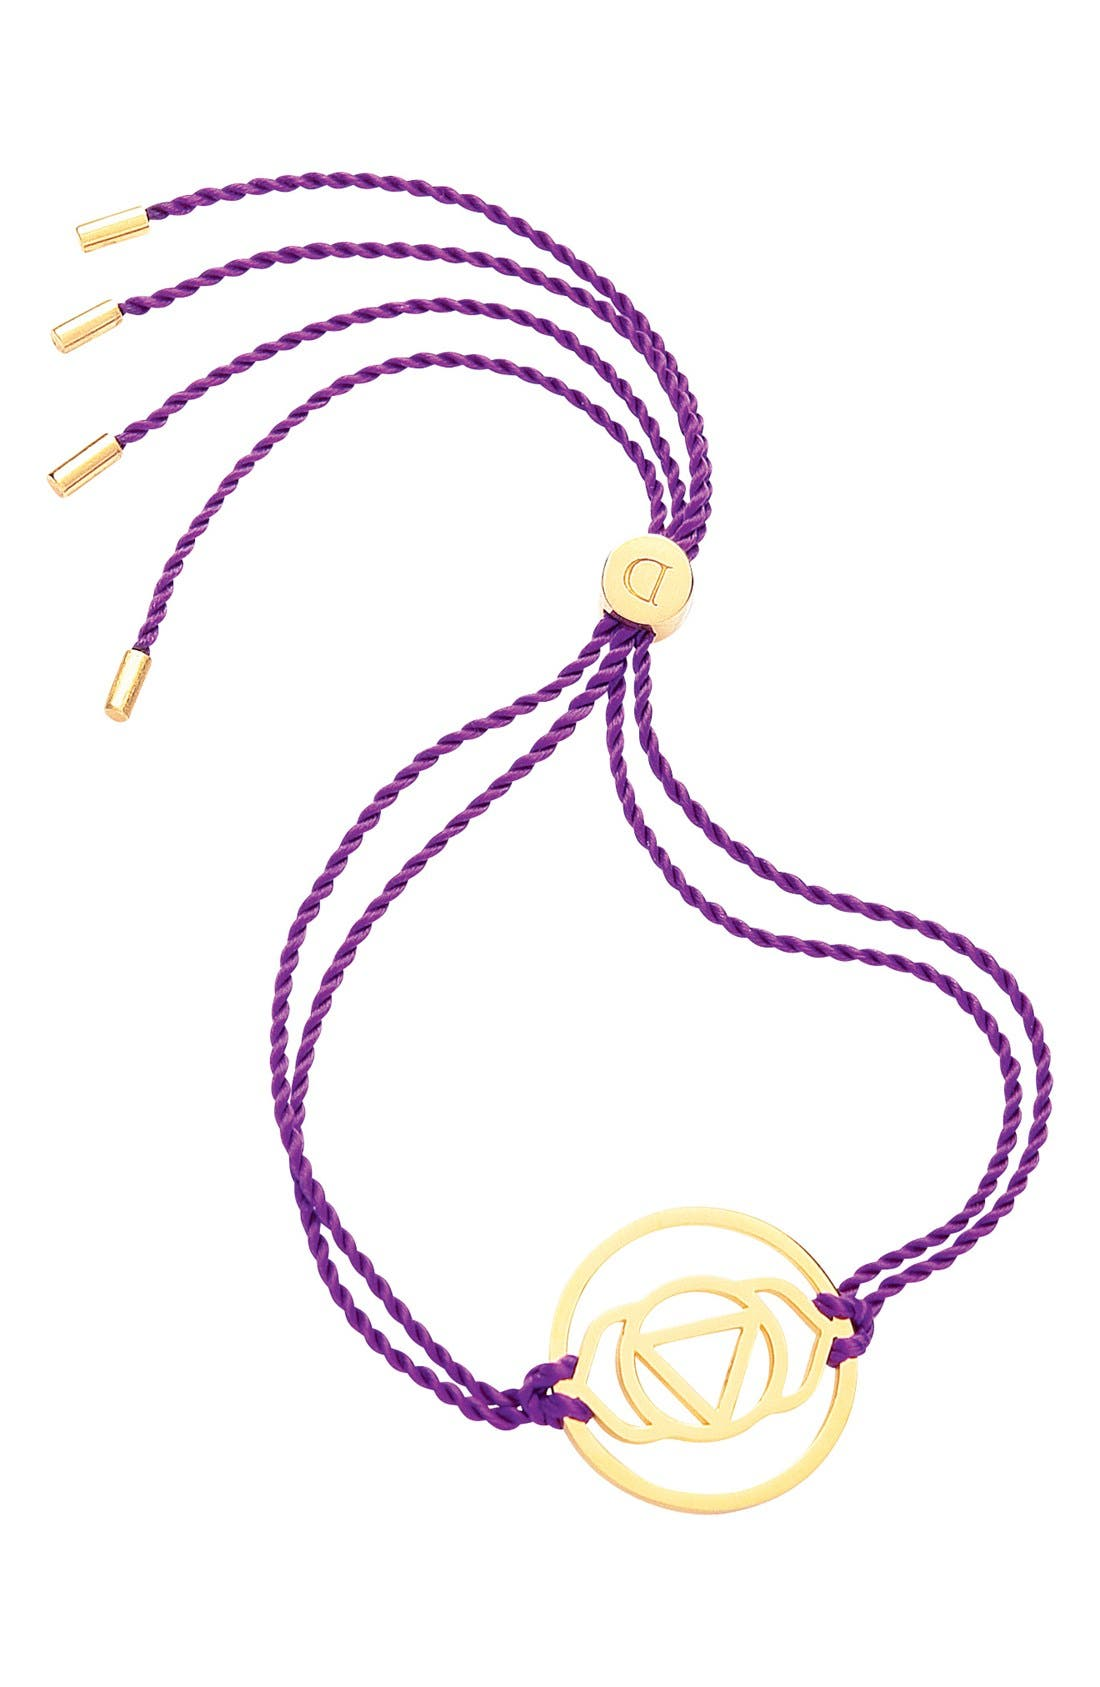 Alternate Image 1 Selected - Daisy London 'Brow Chakra' Cord Bracelet